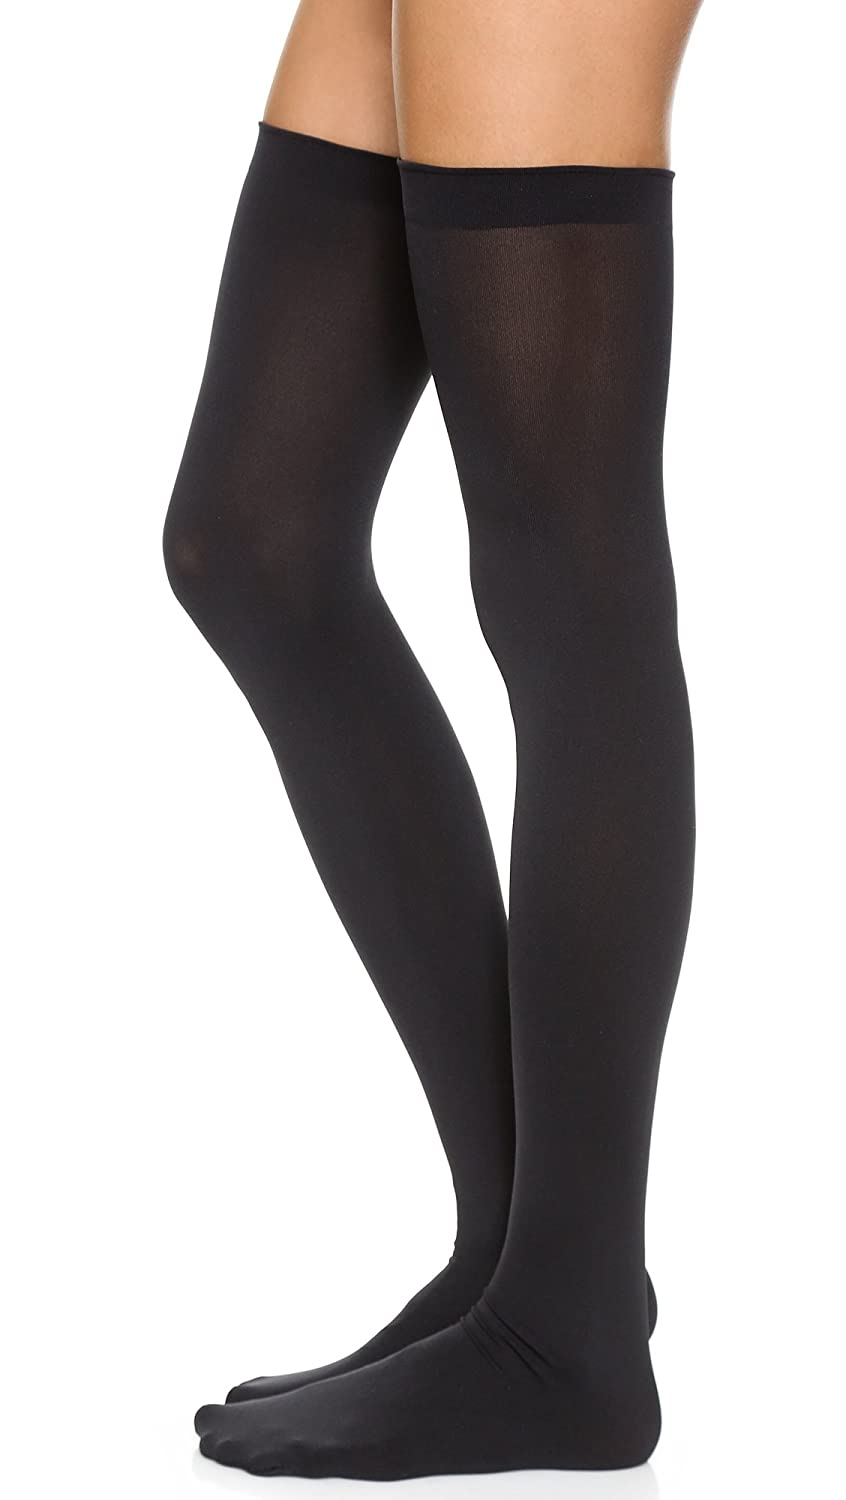 1920s Style Stockings & Socks Wolford Womens Fatal 80 Seamless Stay Up Tights $57.00 AT vintagedancer.com